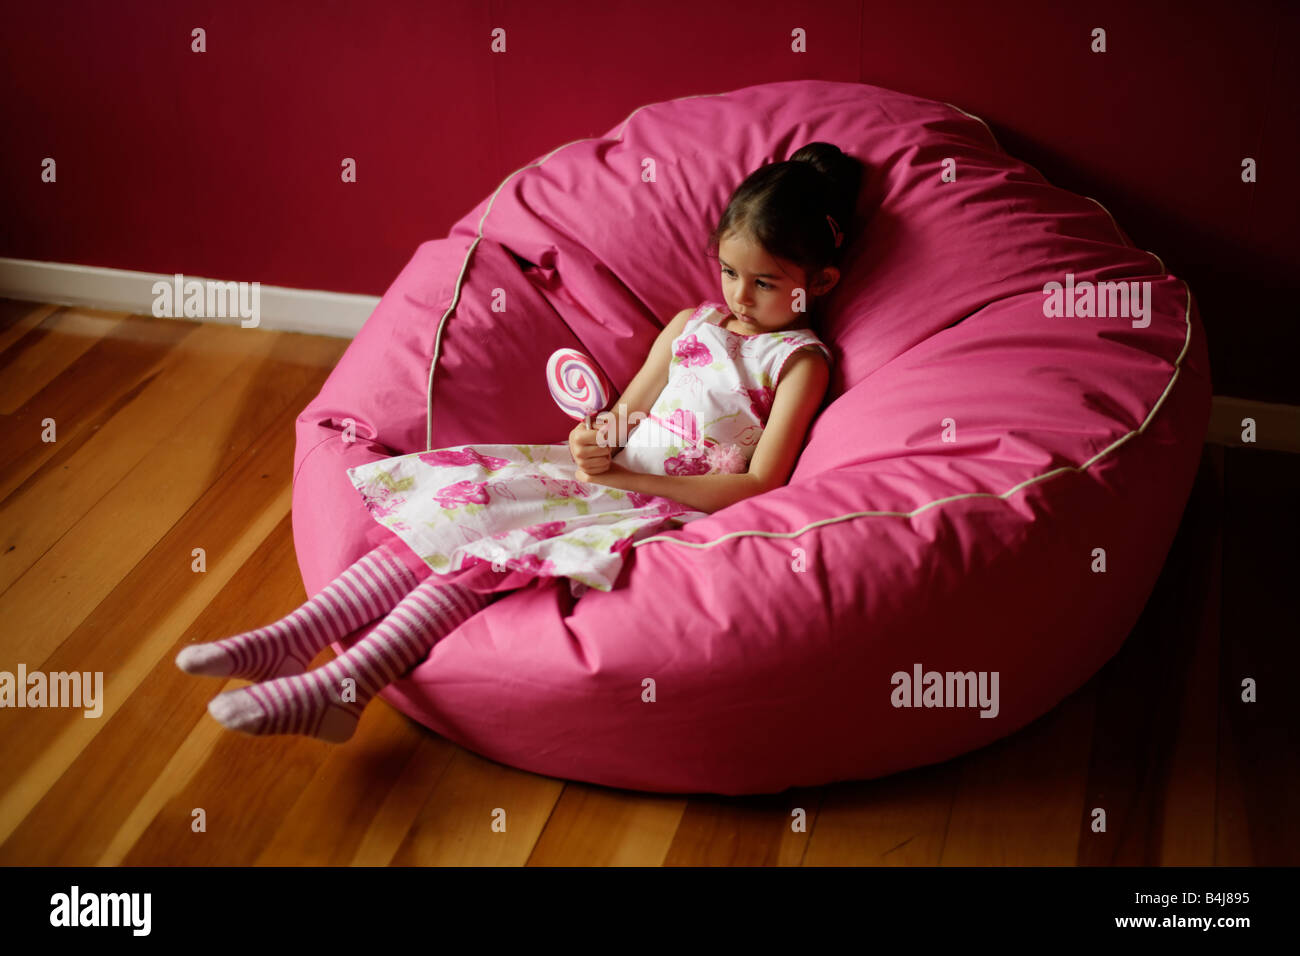 Girl 5 on pink bean bag with lollipop - Stock Image